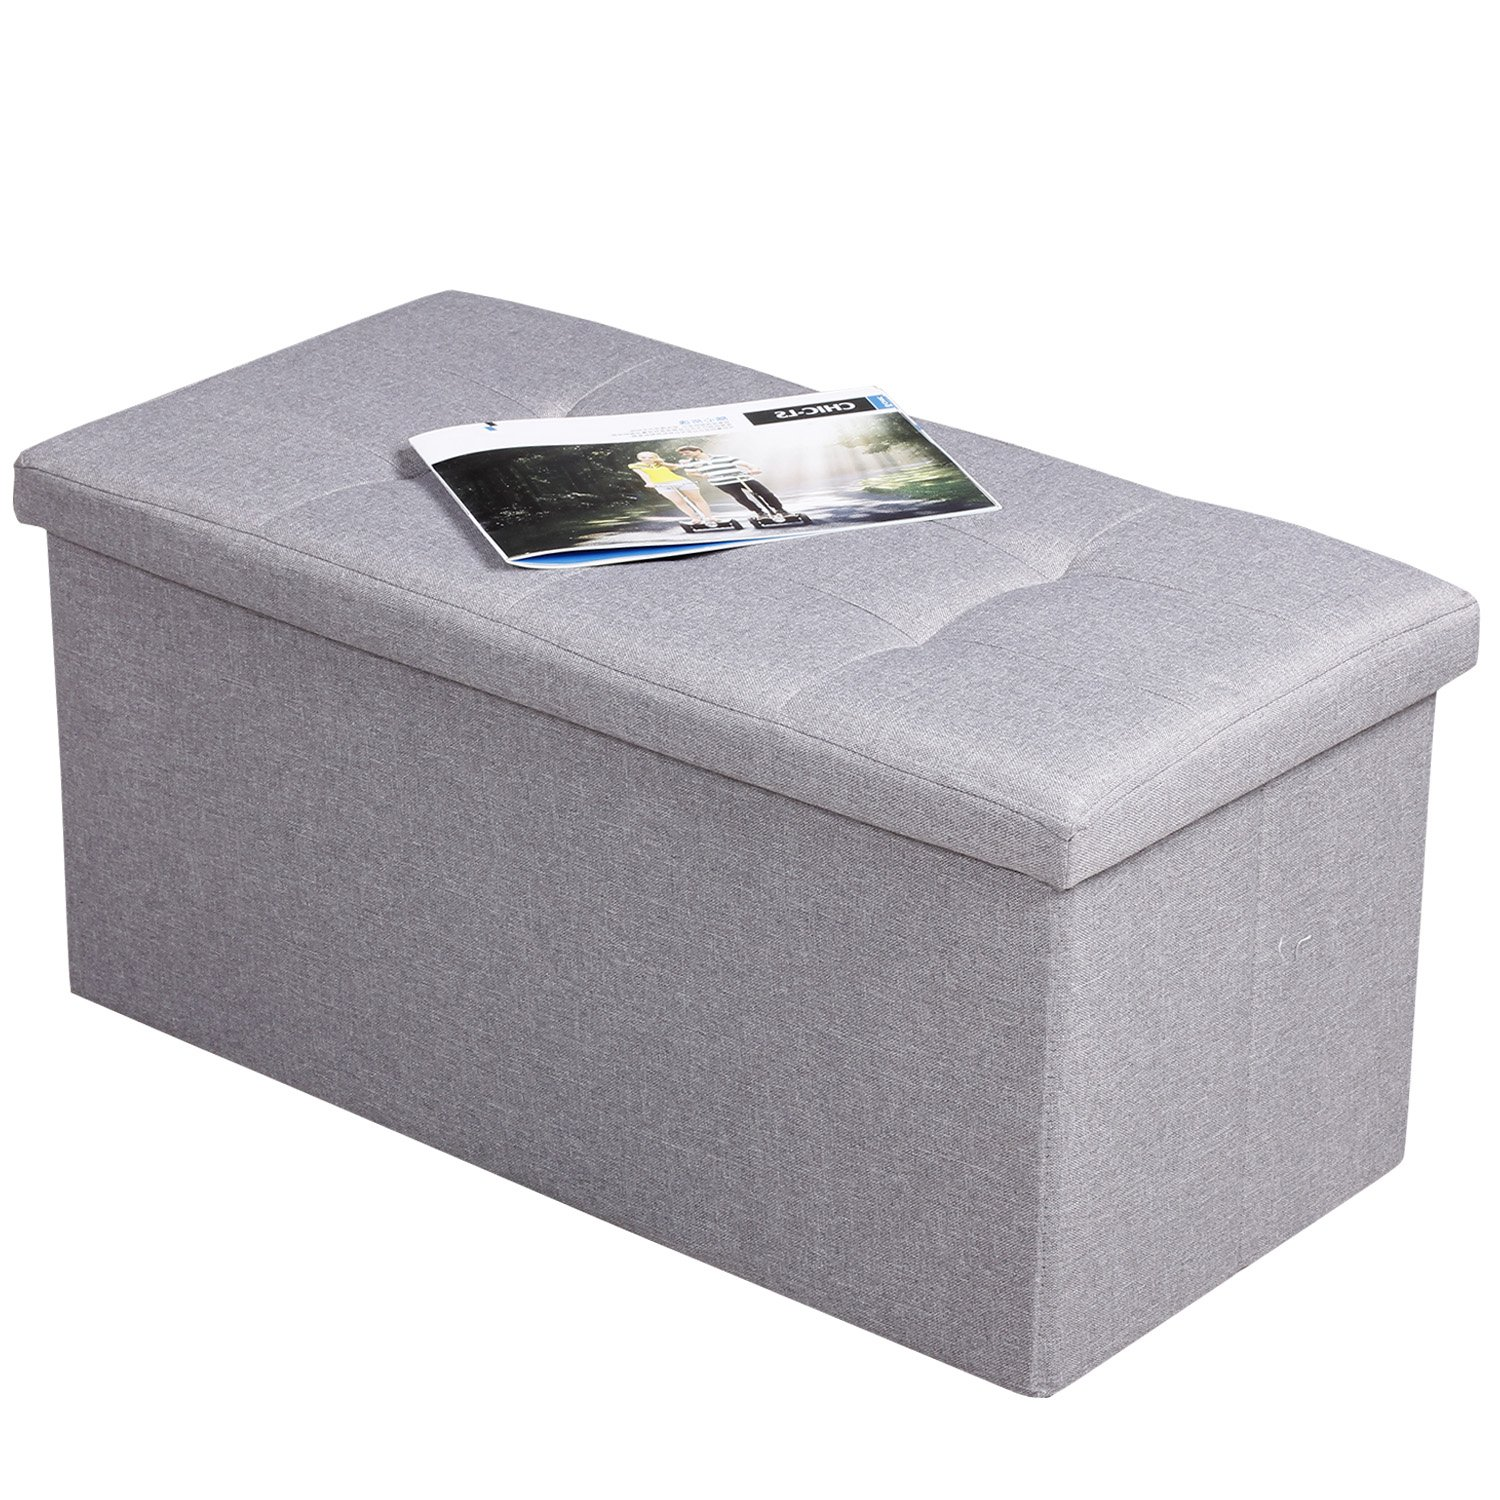 EPCTEK Storage Ottoma Linen Folding Stool,Storage Cube Basket Bins Organizer Containers, Coffee Table Cube, Camping Fishing Stool, Quick and Easy Assembly, Perfect for Child,30''x15''x15'' Cube.(Grey)